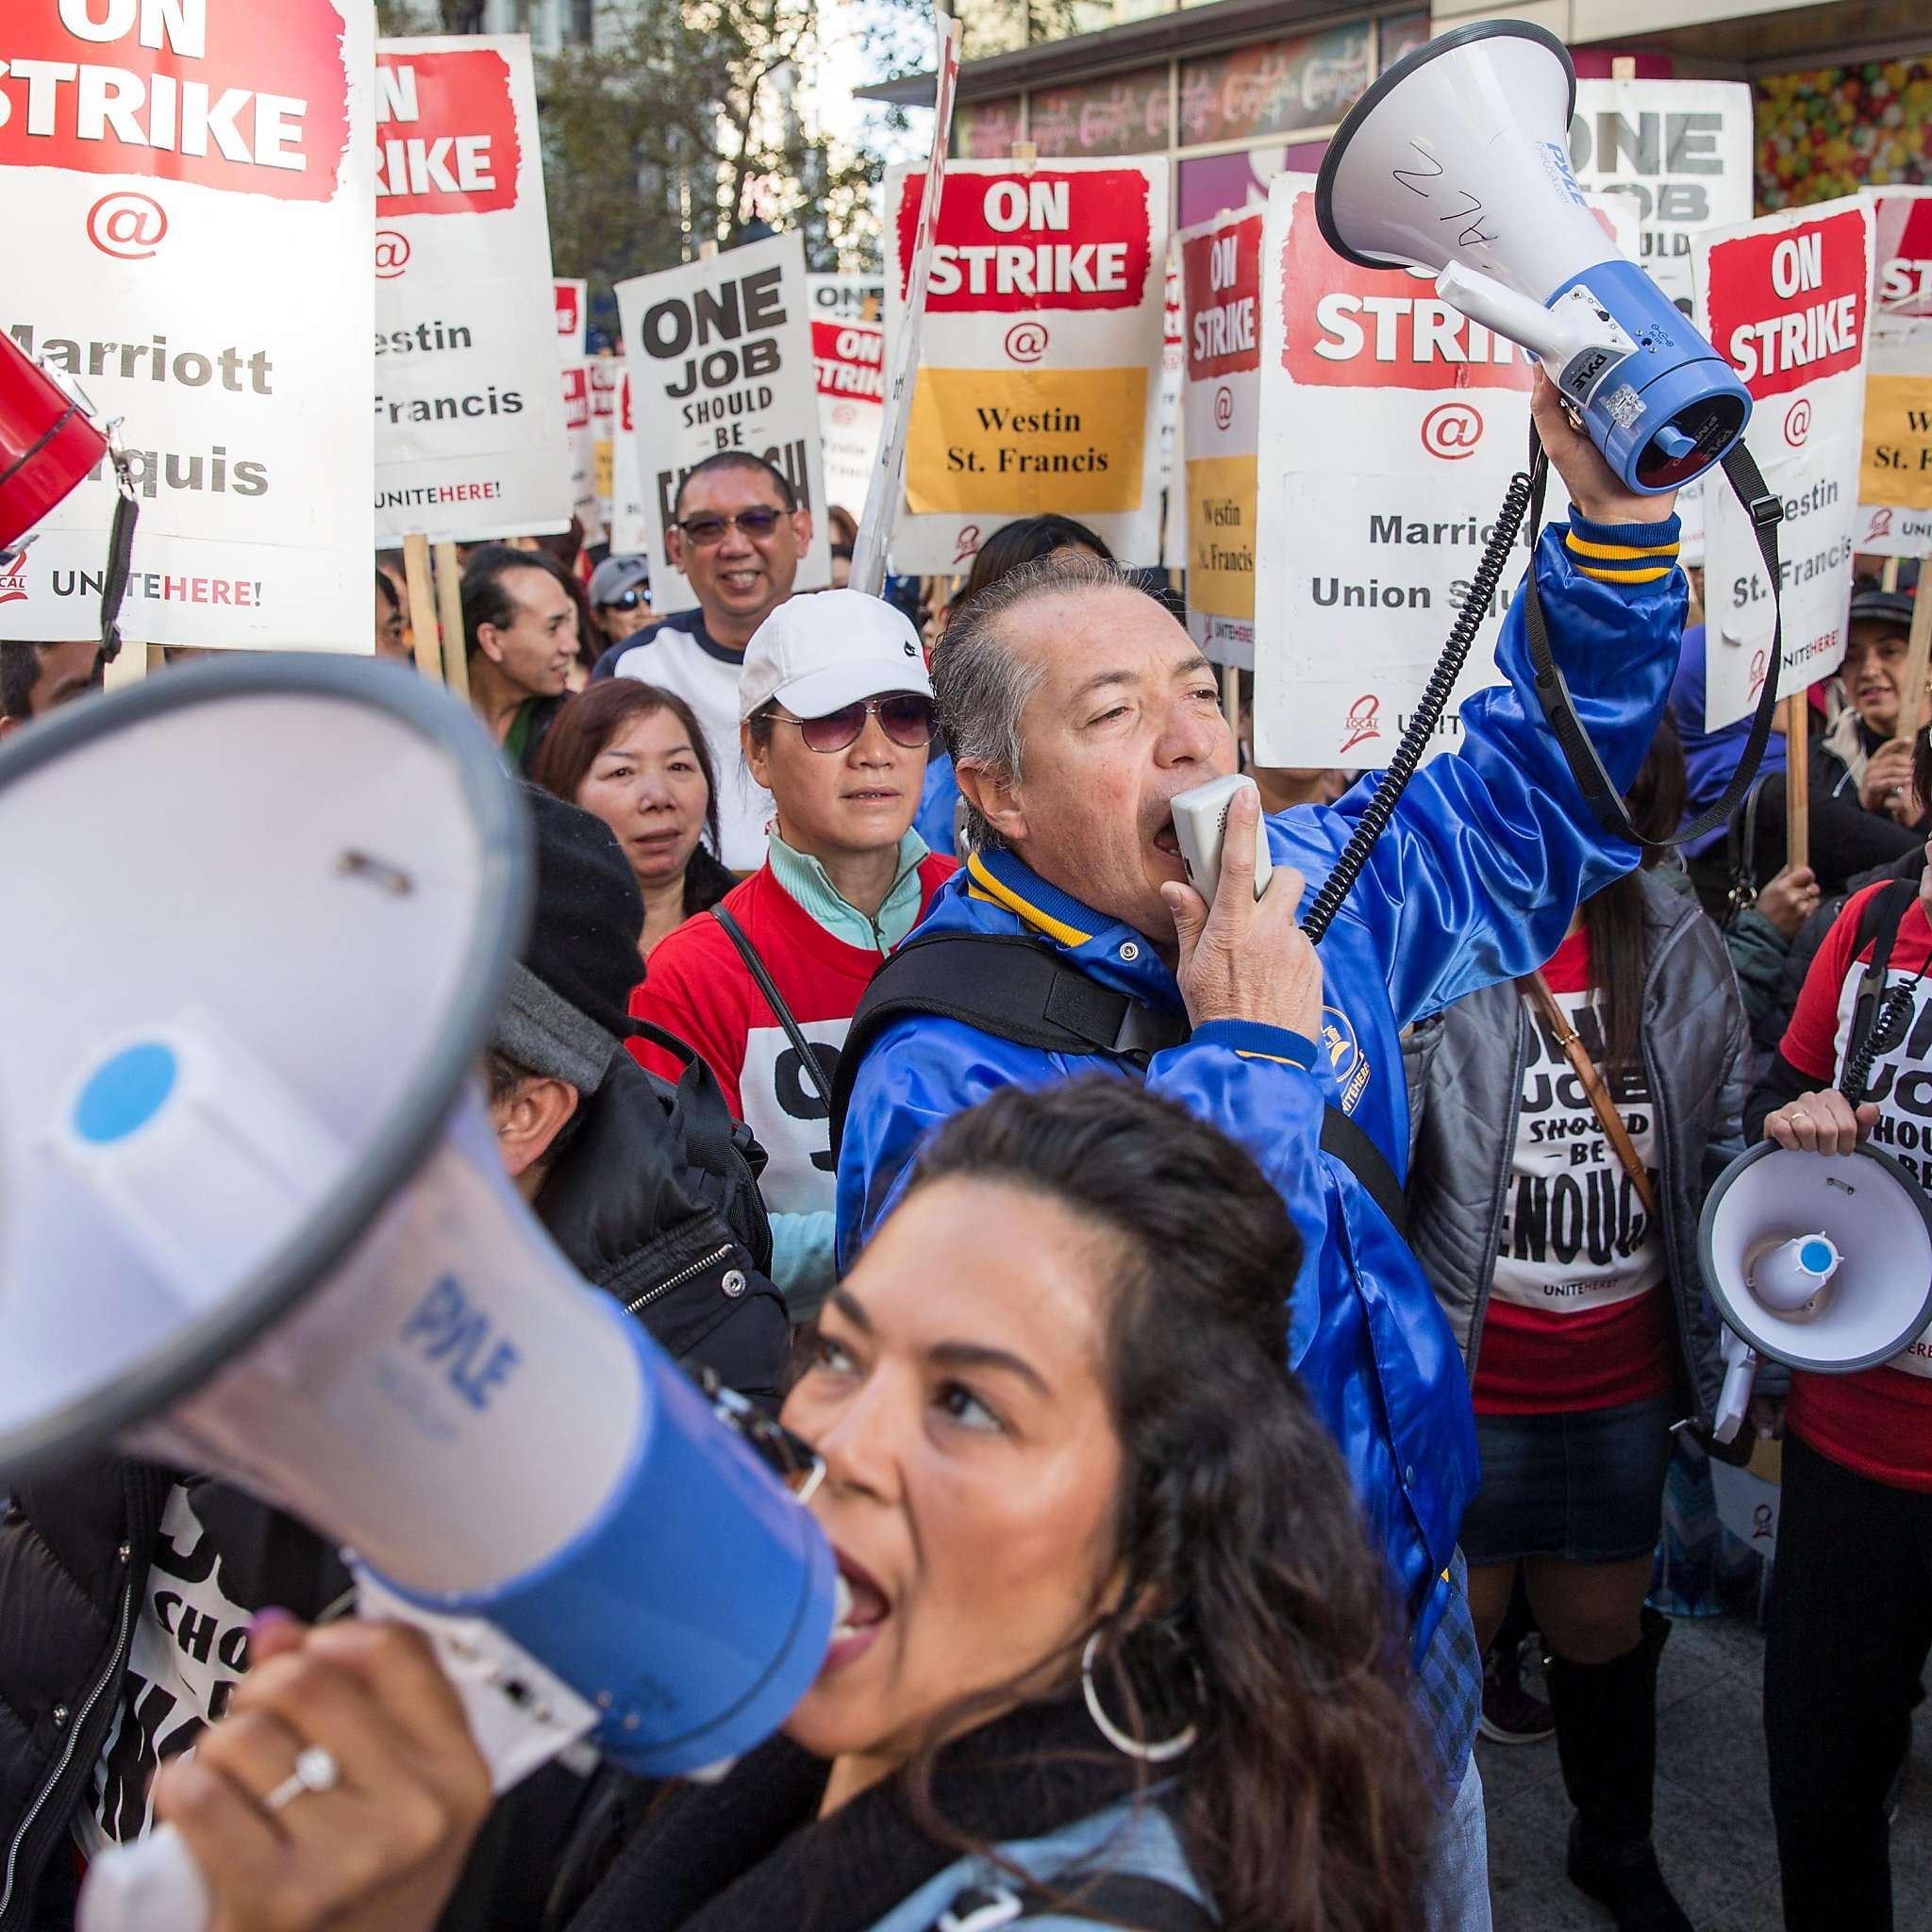 With no deal, SF Marriott hotel strike expected to last through